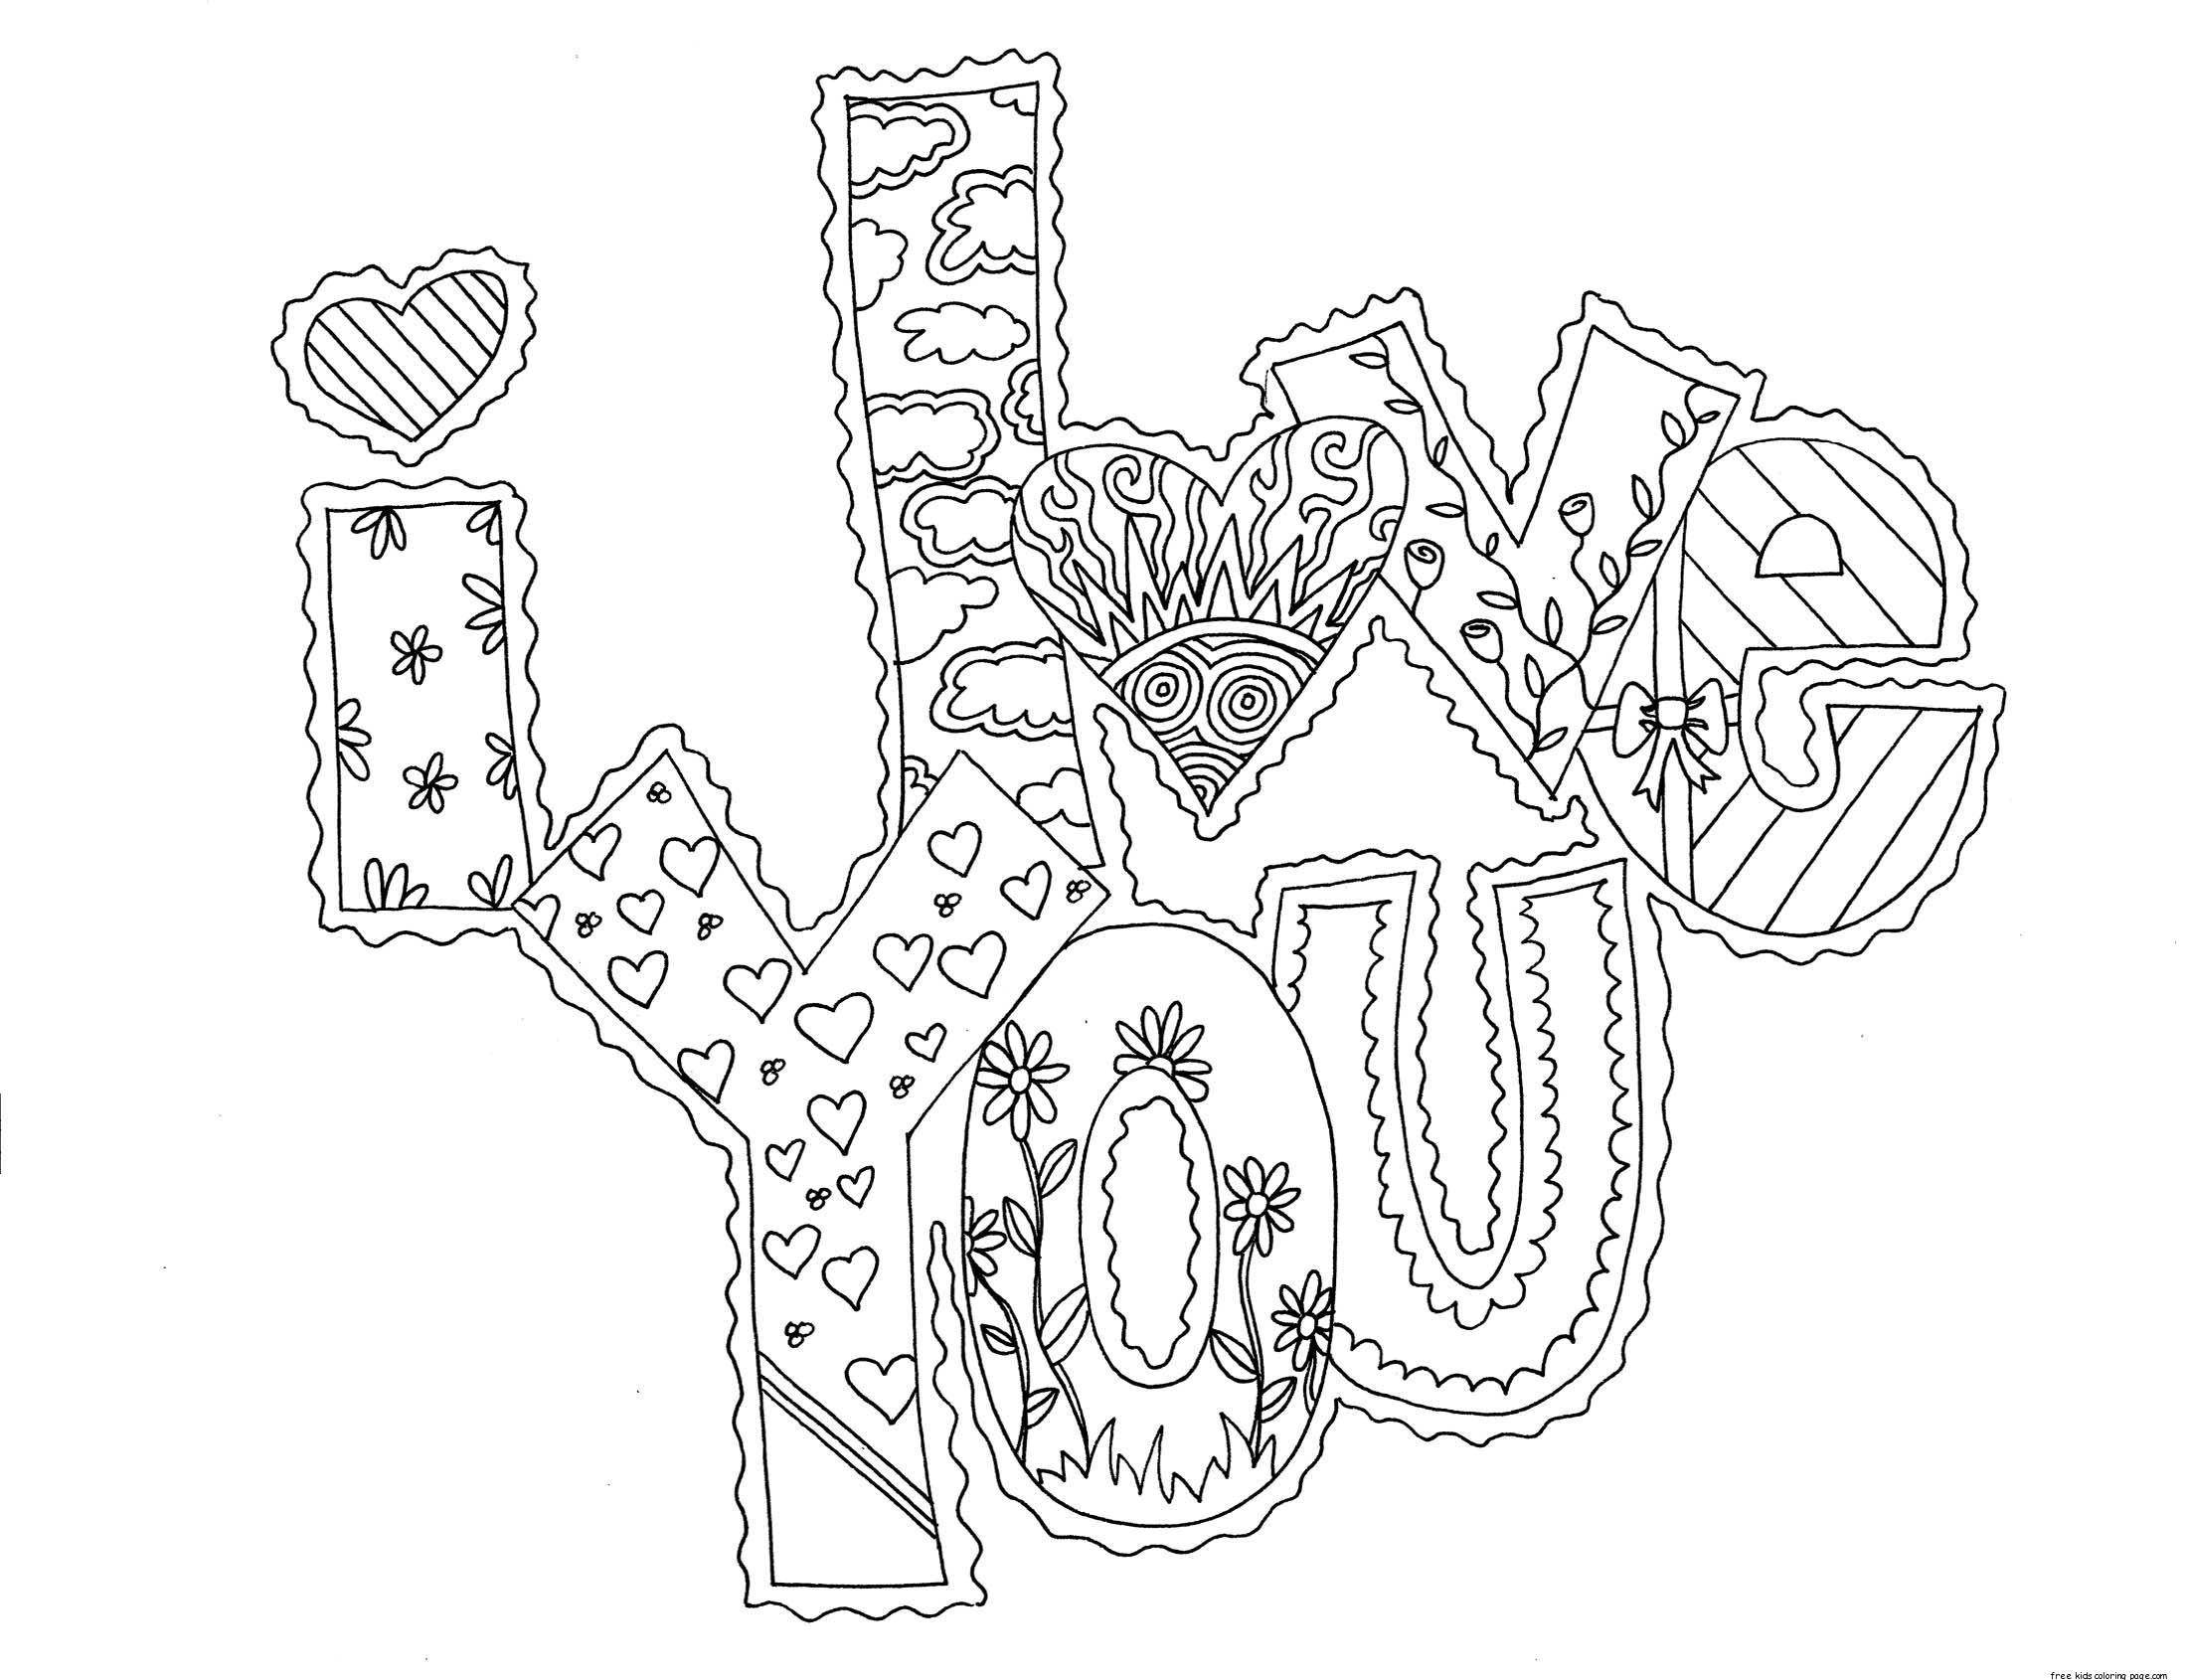 Coloring I love you!. Category I love you. Tags:  Recognition, love.